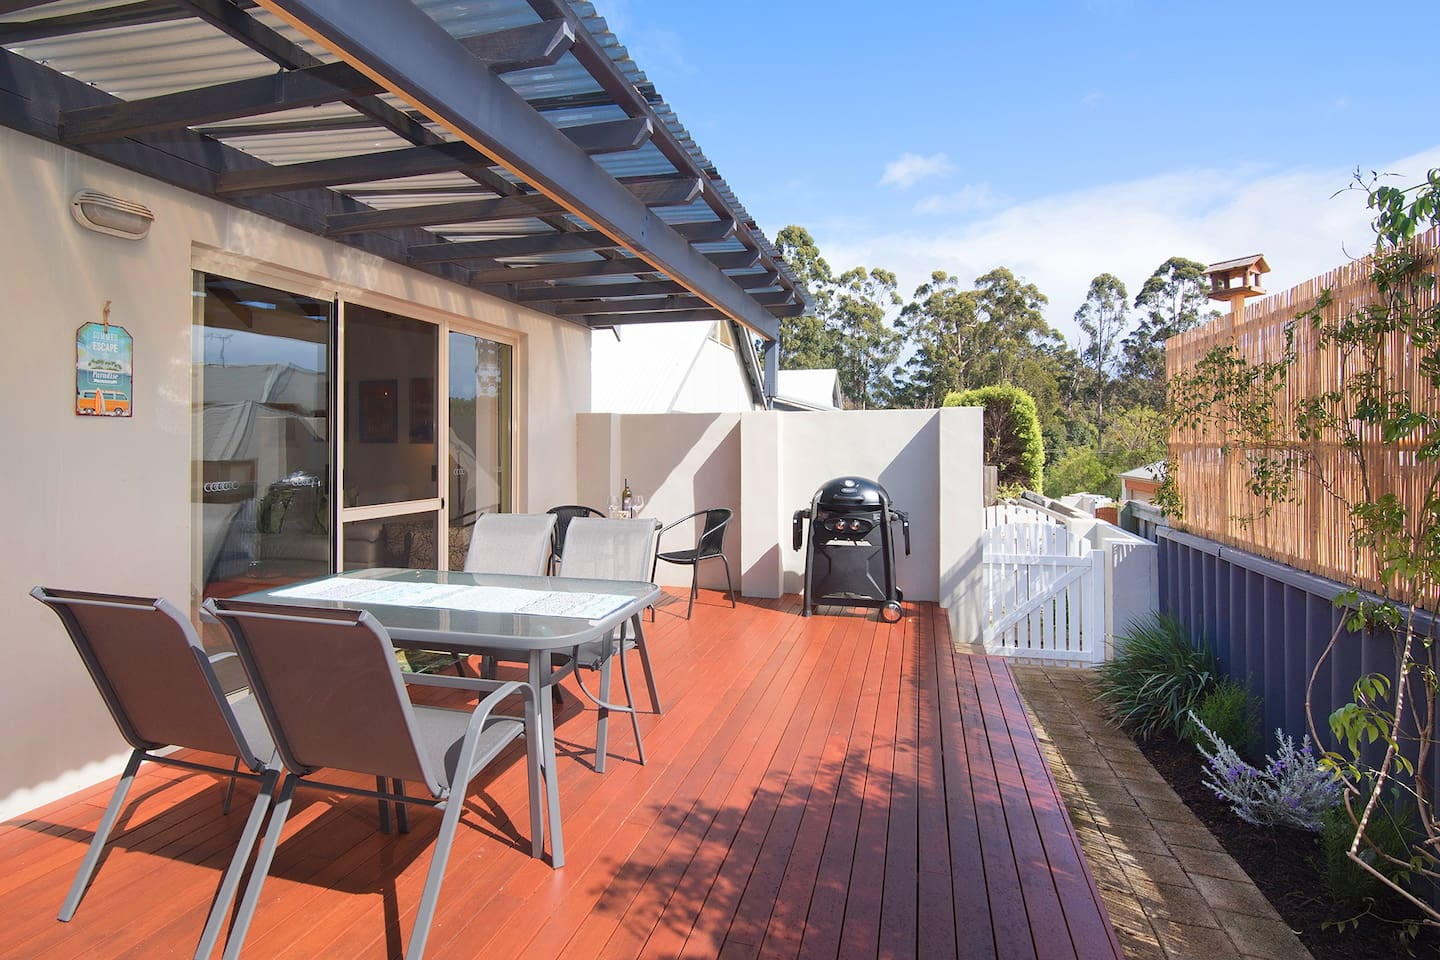 The private decked courtyard area is the perfect place for a BBQ.